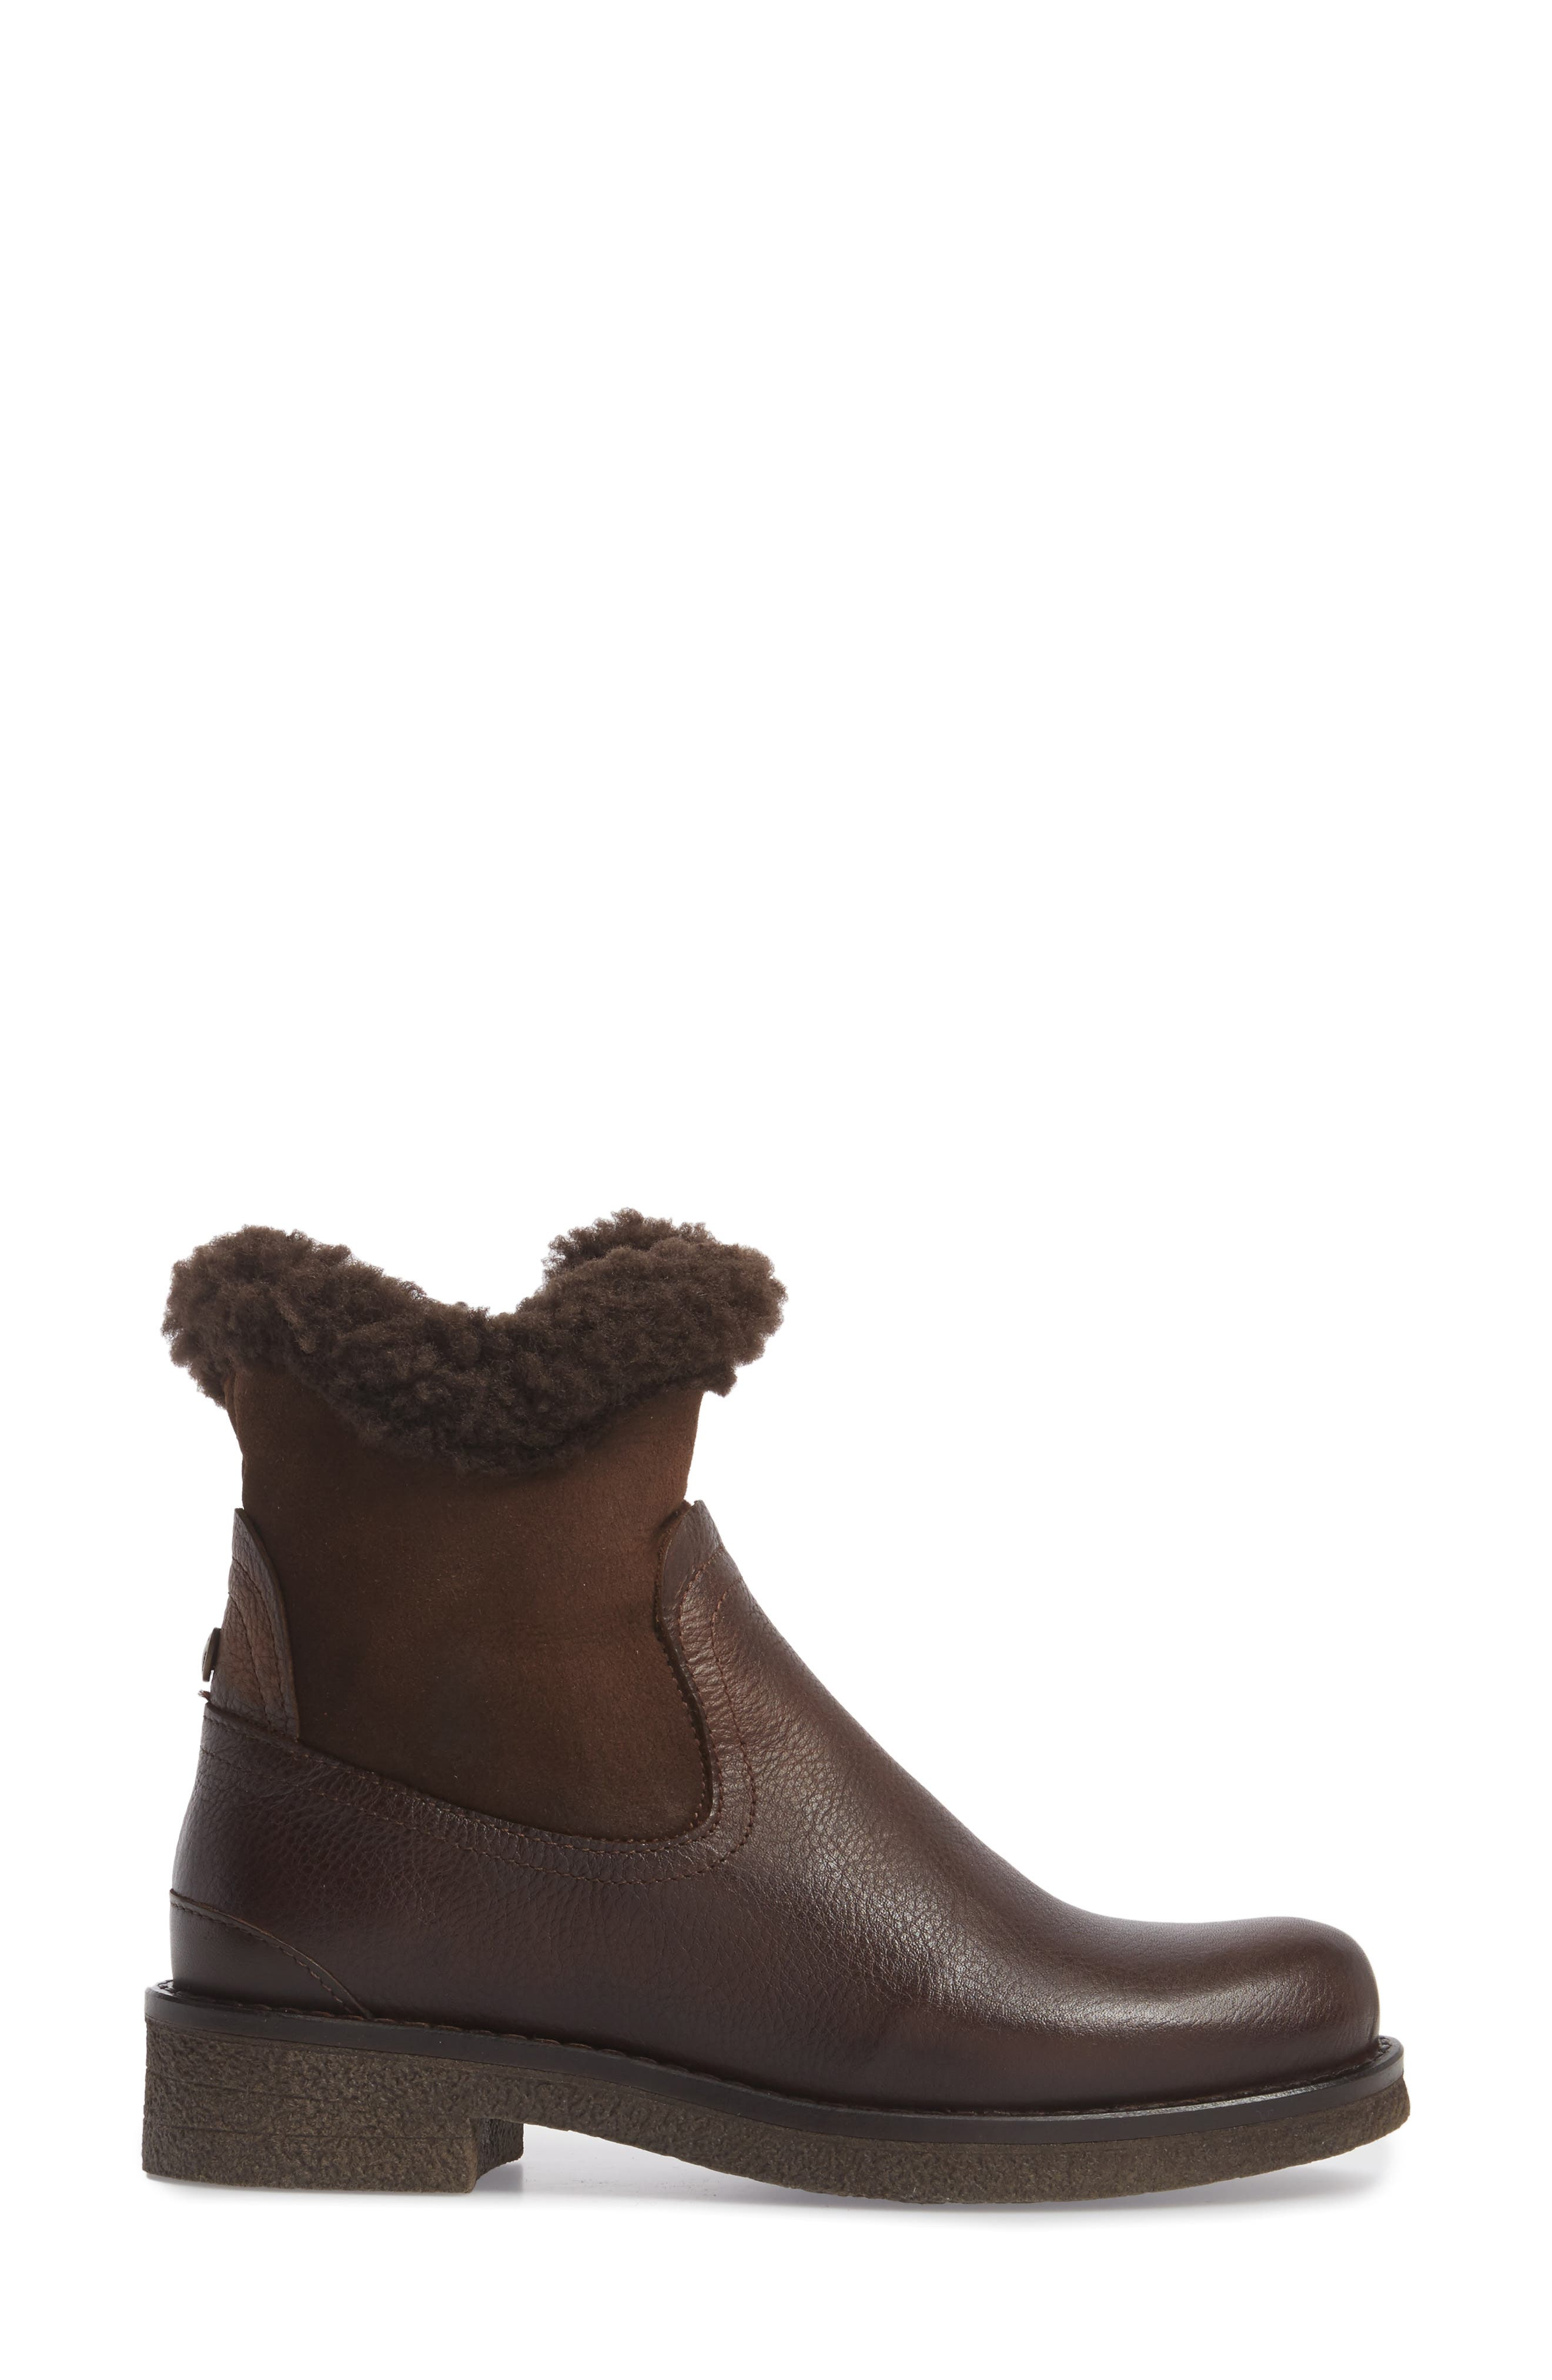 Odessa Waterproof Insulated Snow Boot,                             Alternate thumbnail 3, color,                             Brown Fur Leather